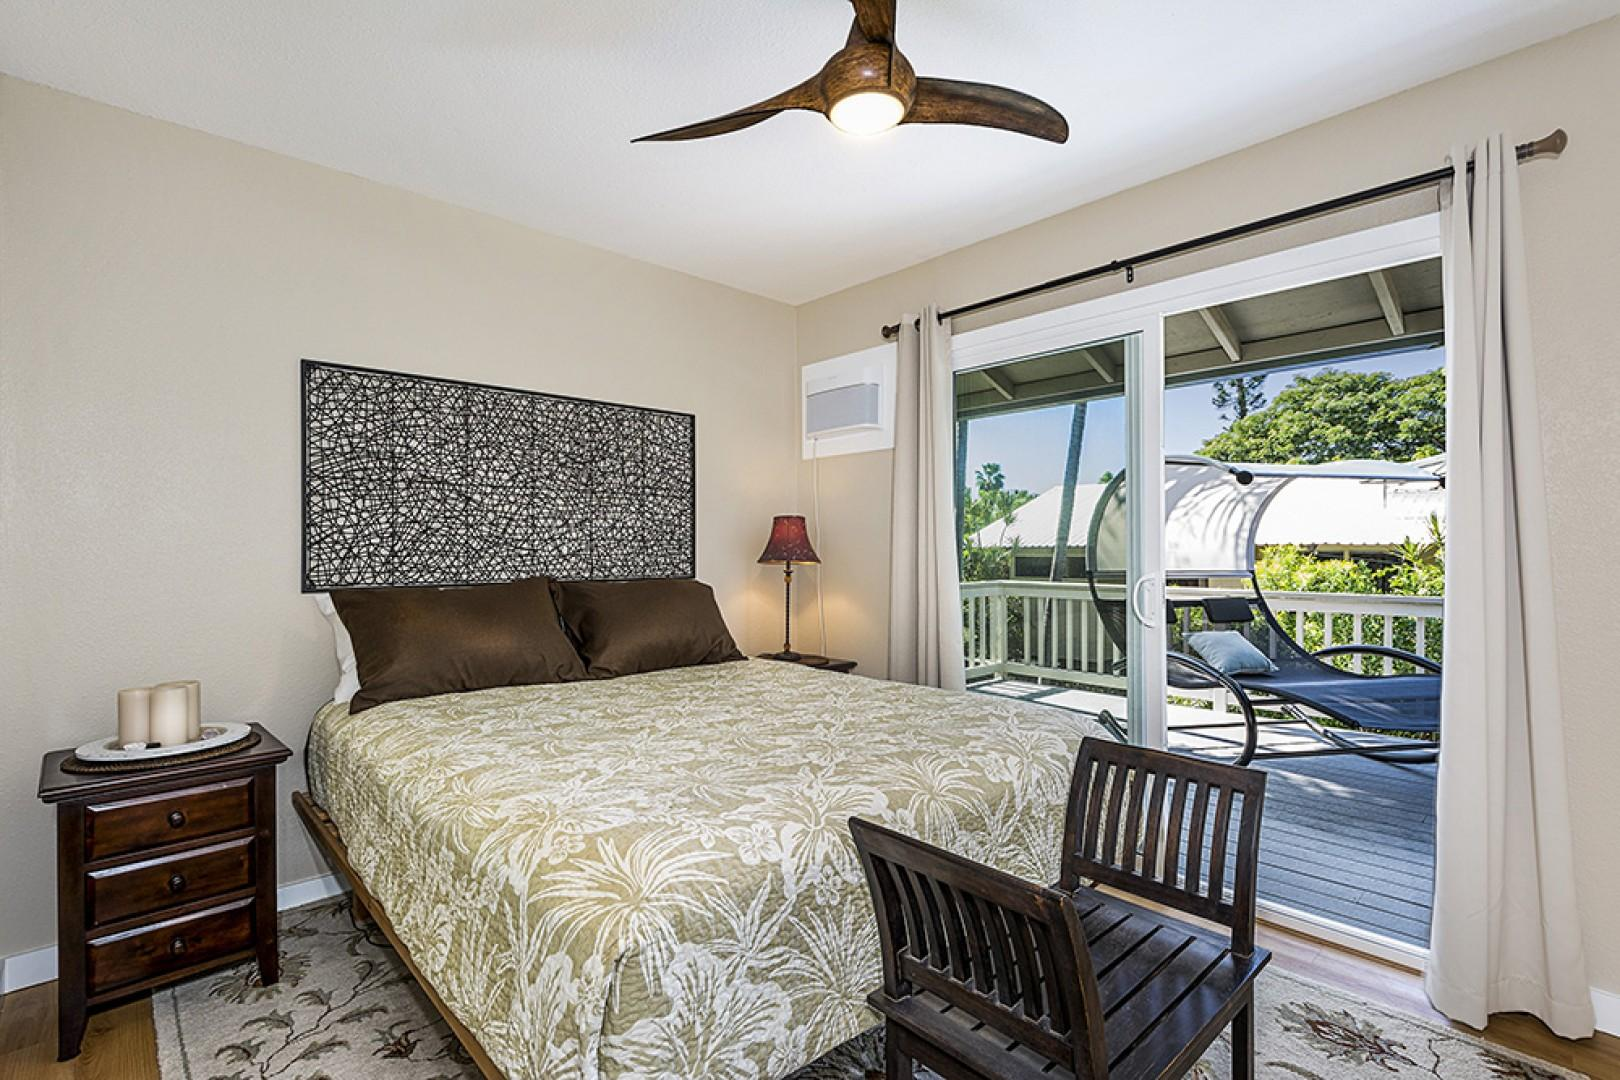 Guest bedroom equipped with Queen bed, lanai access, and A/C